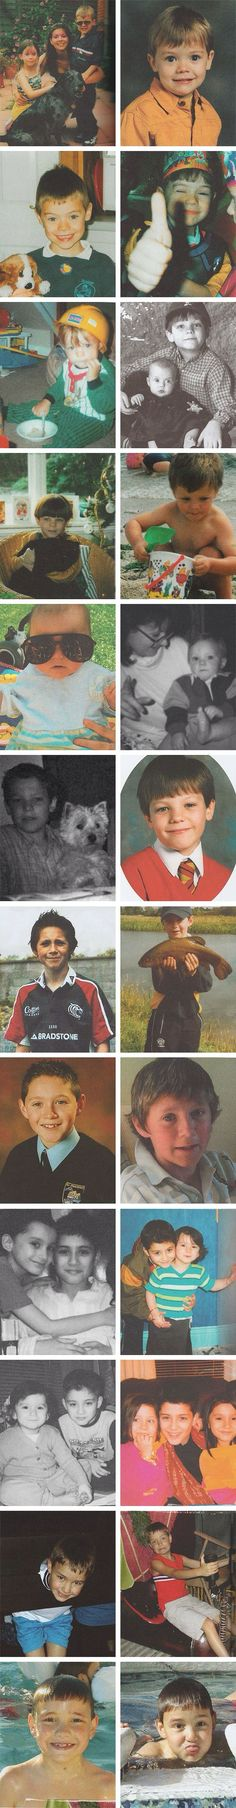 Guess who are they One direction boys Niall Horan, Zayn Malik, I Love One Direction, Liam Payne, Louis Tomlinson, James Horan, 1d And 5sos, Harry Edward Styles, Toddler Girls